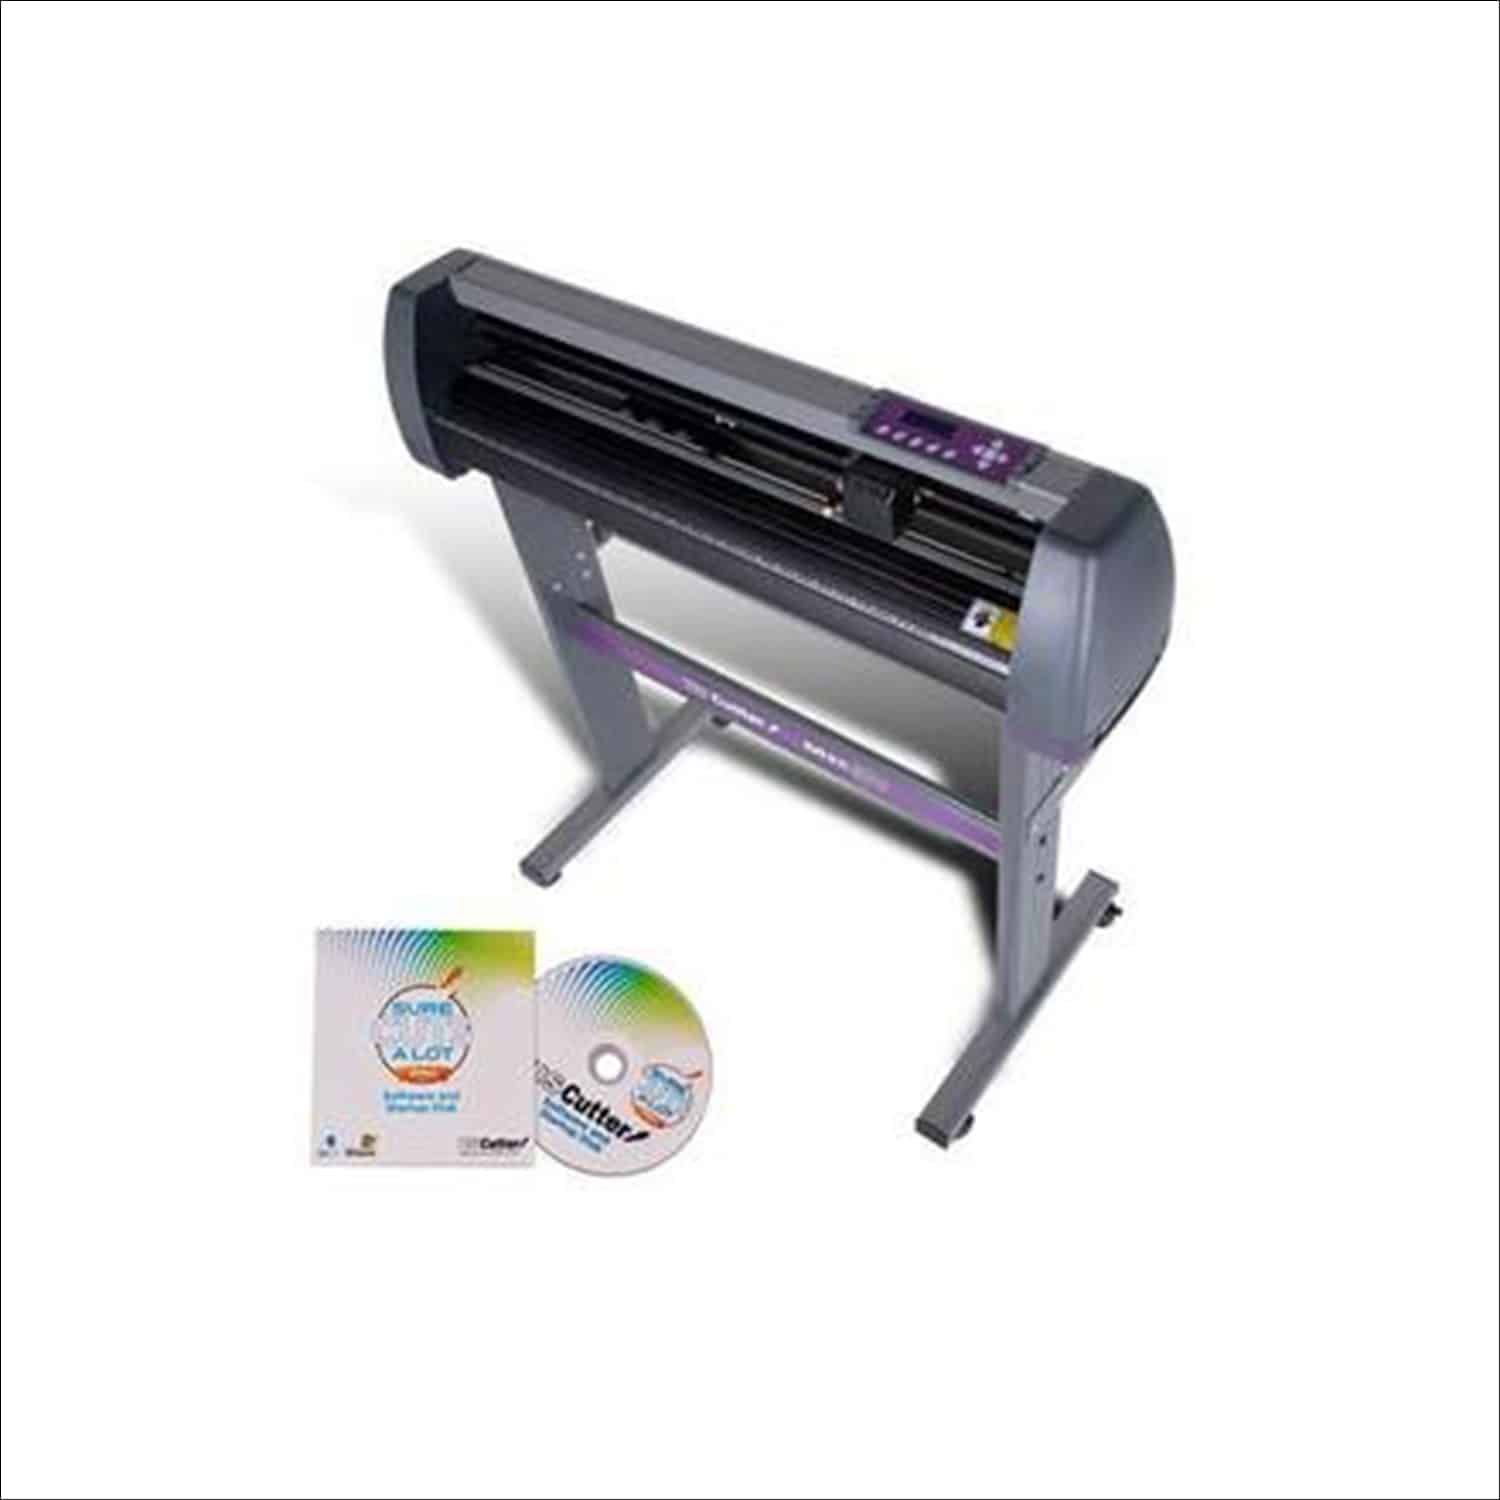 uscutter mh721 28 inch vinyl cutter and plotter - Best Vinyl Cutter